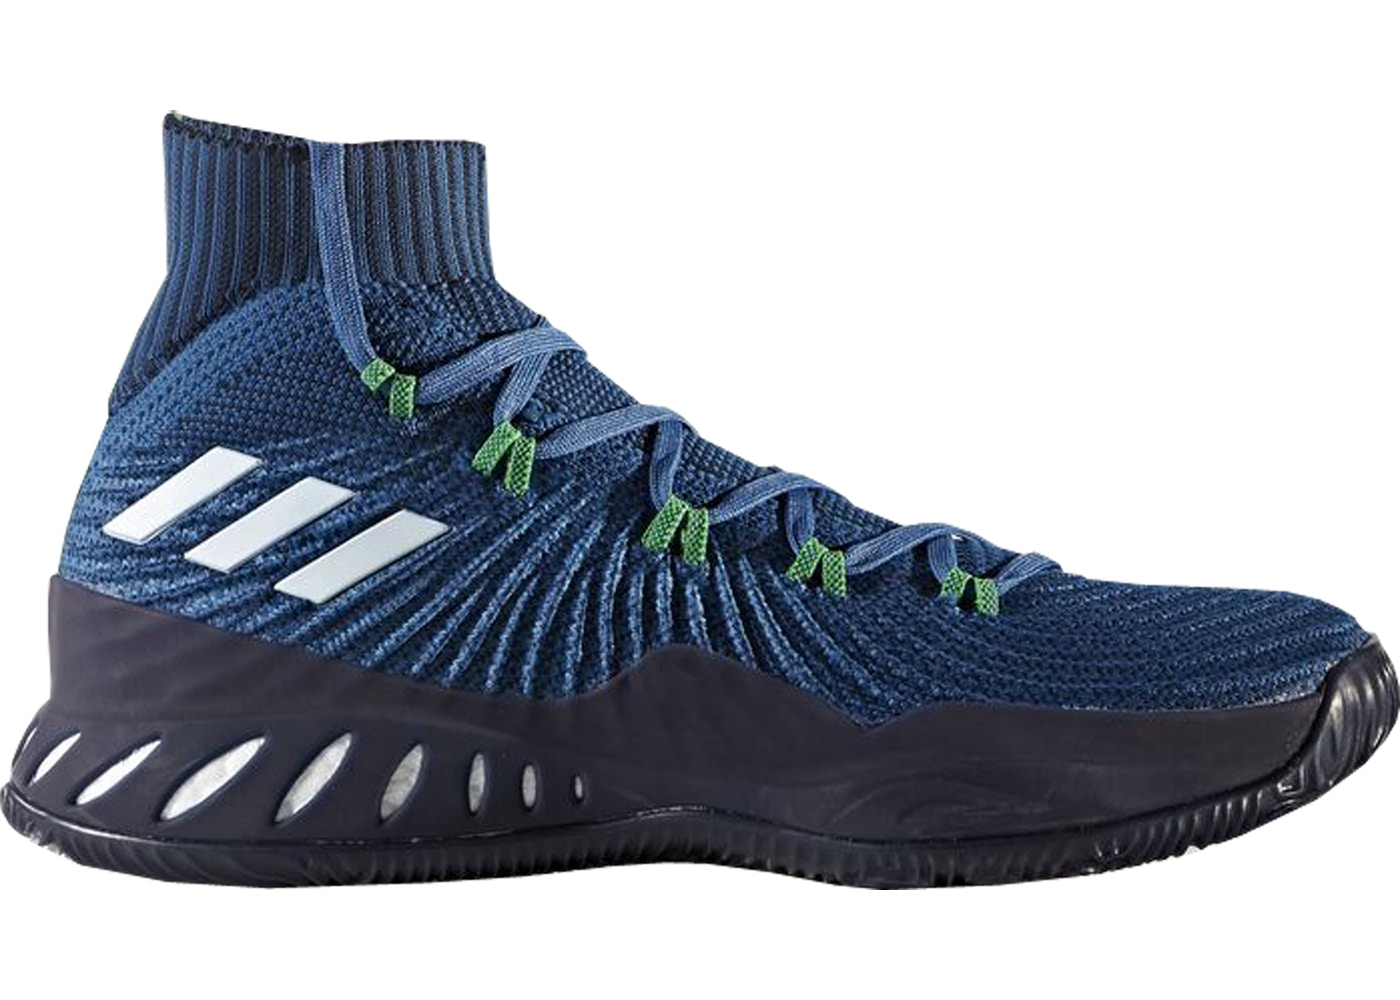 huge selection of 04127 78e1d adidas Crazy Explosive 17 Andrew Wiggins PE - BY4468